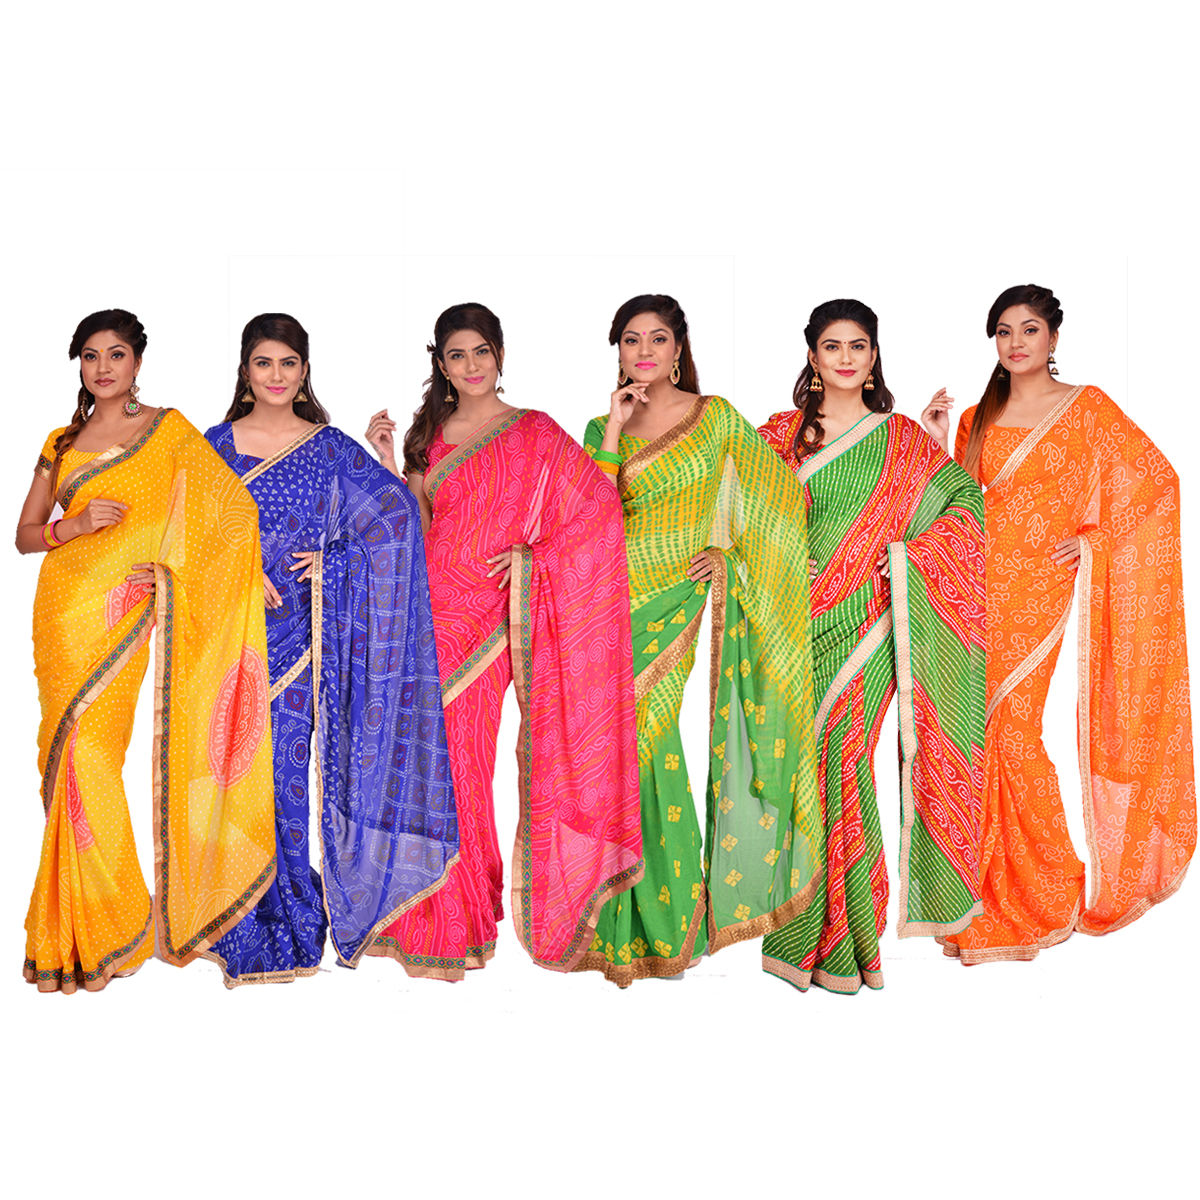 806871a6aa Buy Pack of 6 Assorted Bandhani Sarees with Designer Lace by Pakhi (6GBS5)  Online at Best Price in India on Naaptol.com